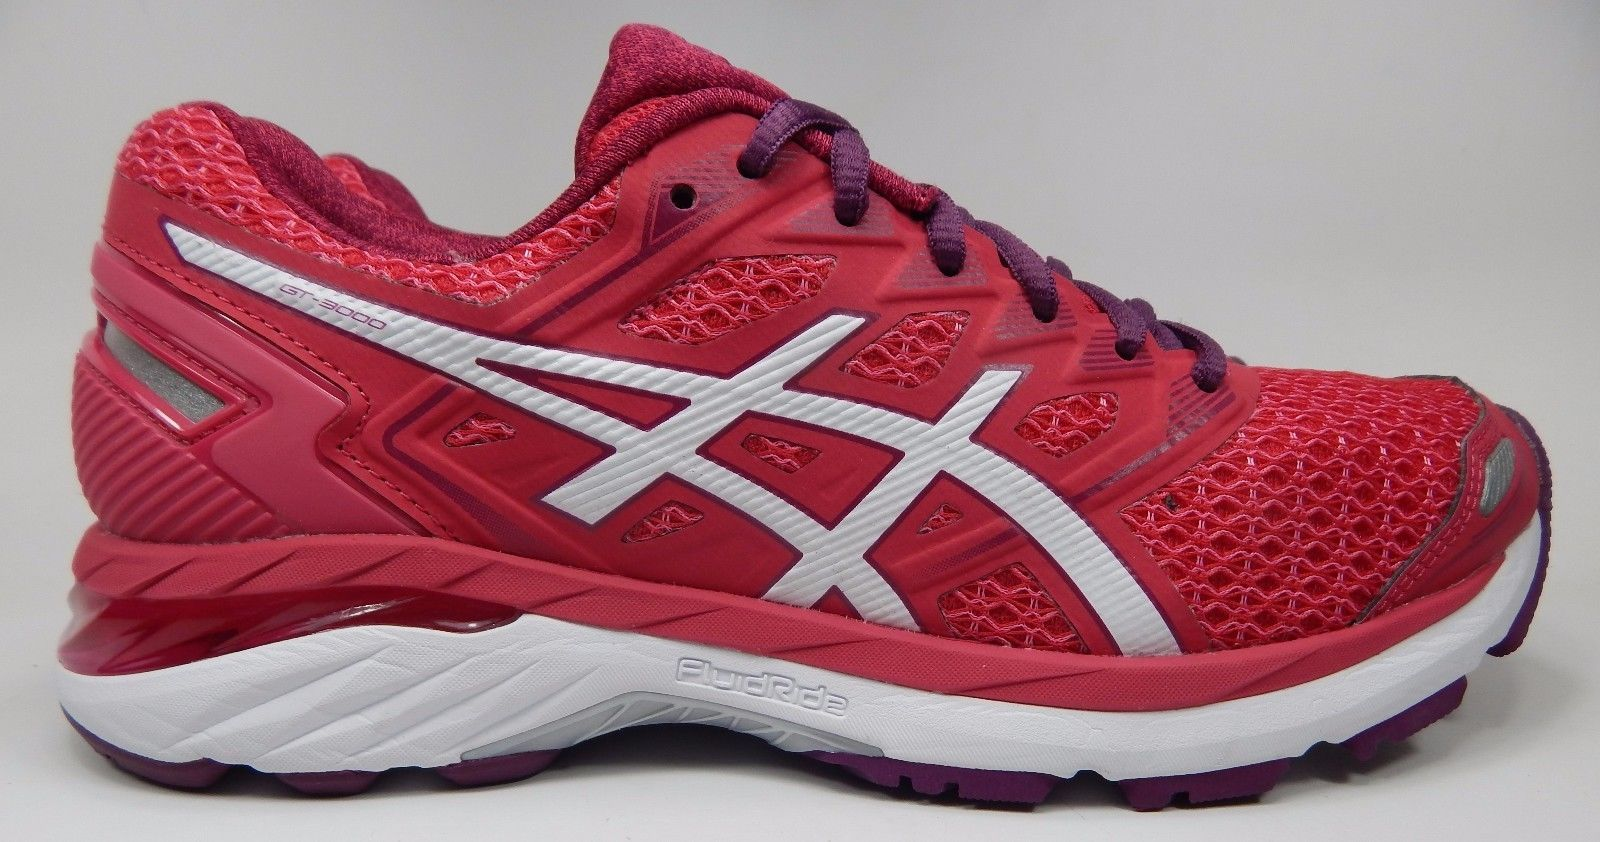 asics gt 3000 v 5 women 39 s running shoes size us 8 m b eu. Black Bedroom Furniture Sets. Home Design Ideas